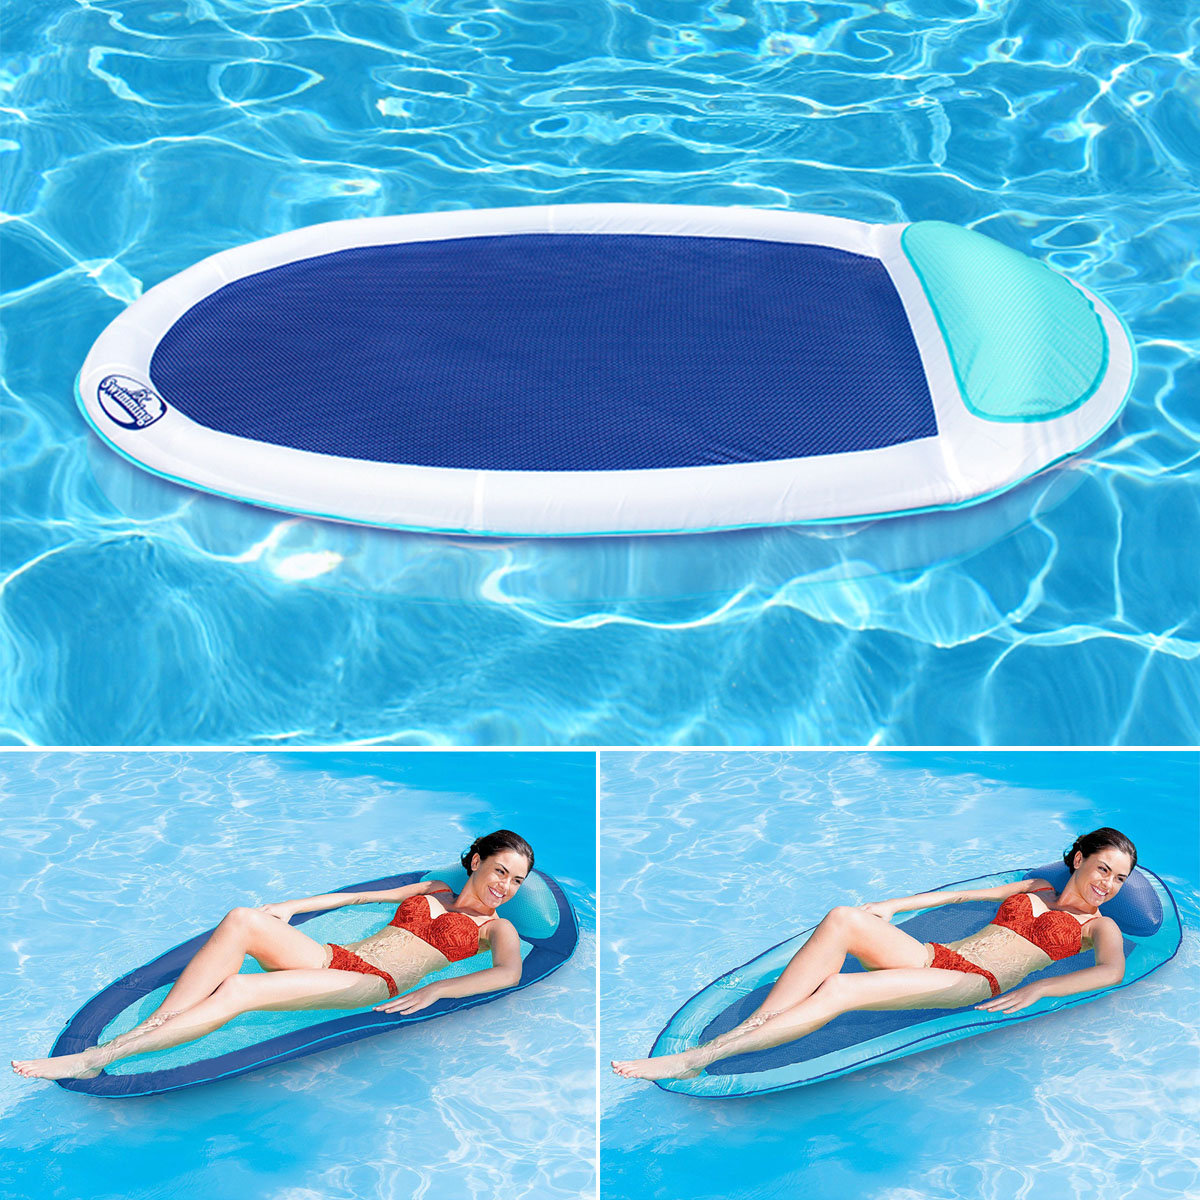 Adult inflatable swimming pool from this